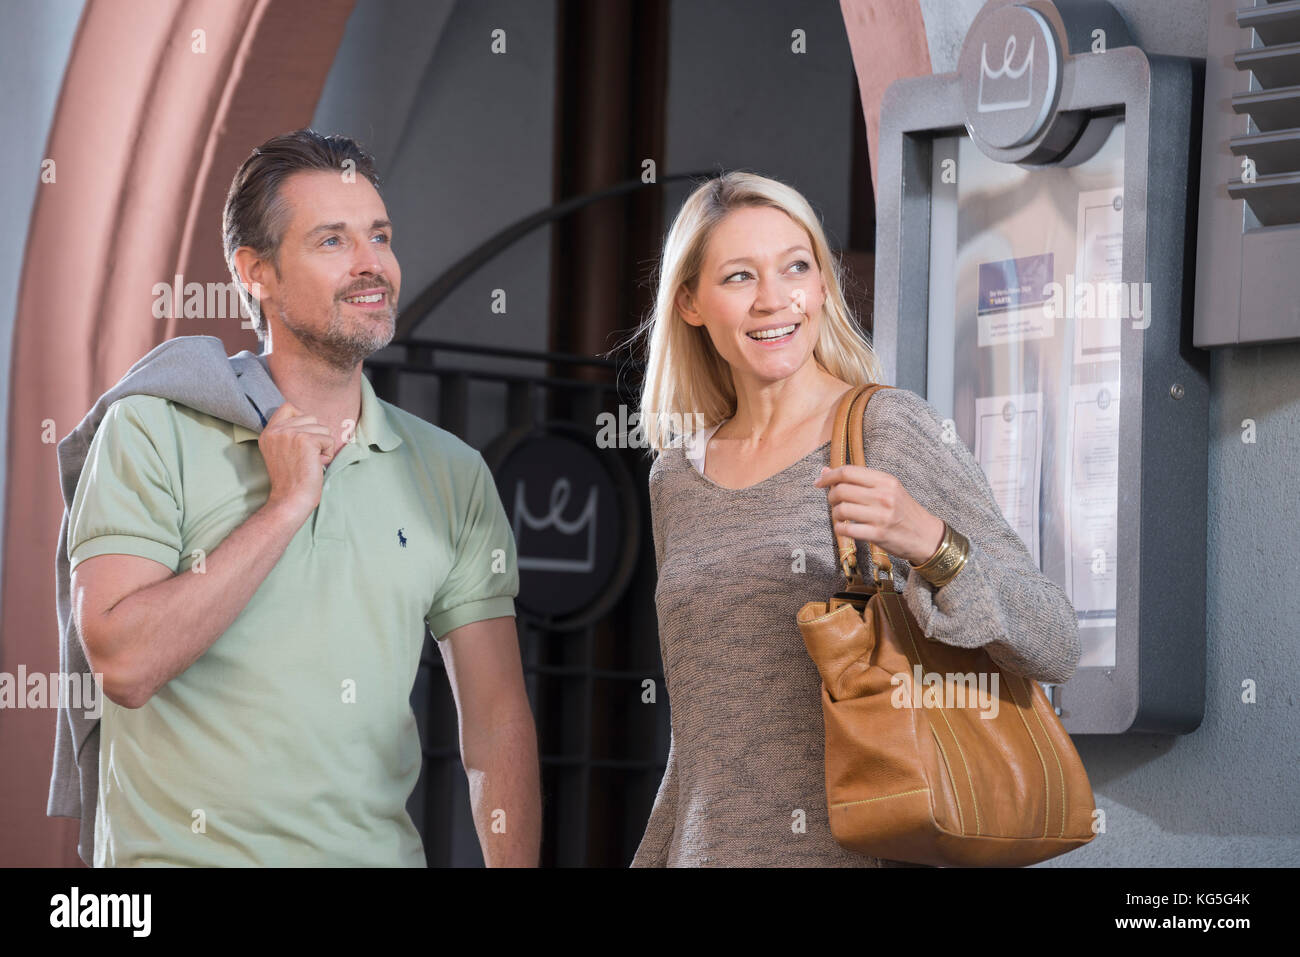 Man and woman stands smilingly in front of hotel input, portrait - Stock Image